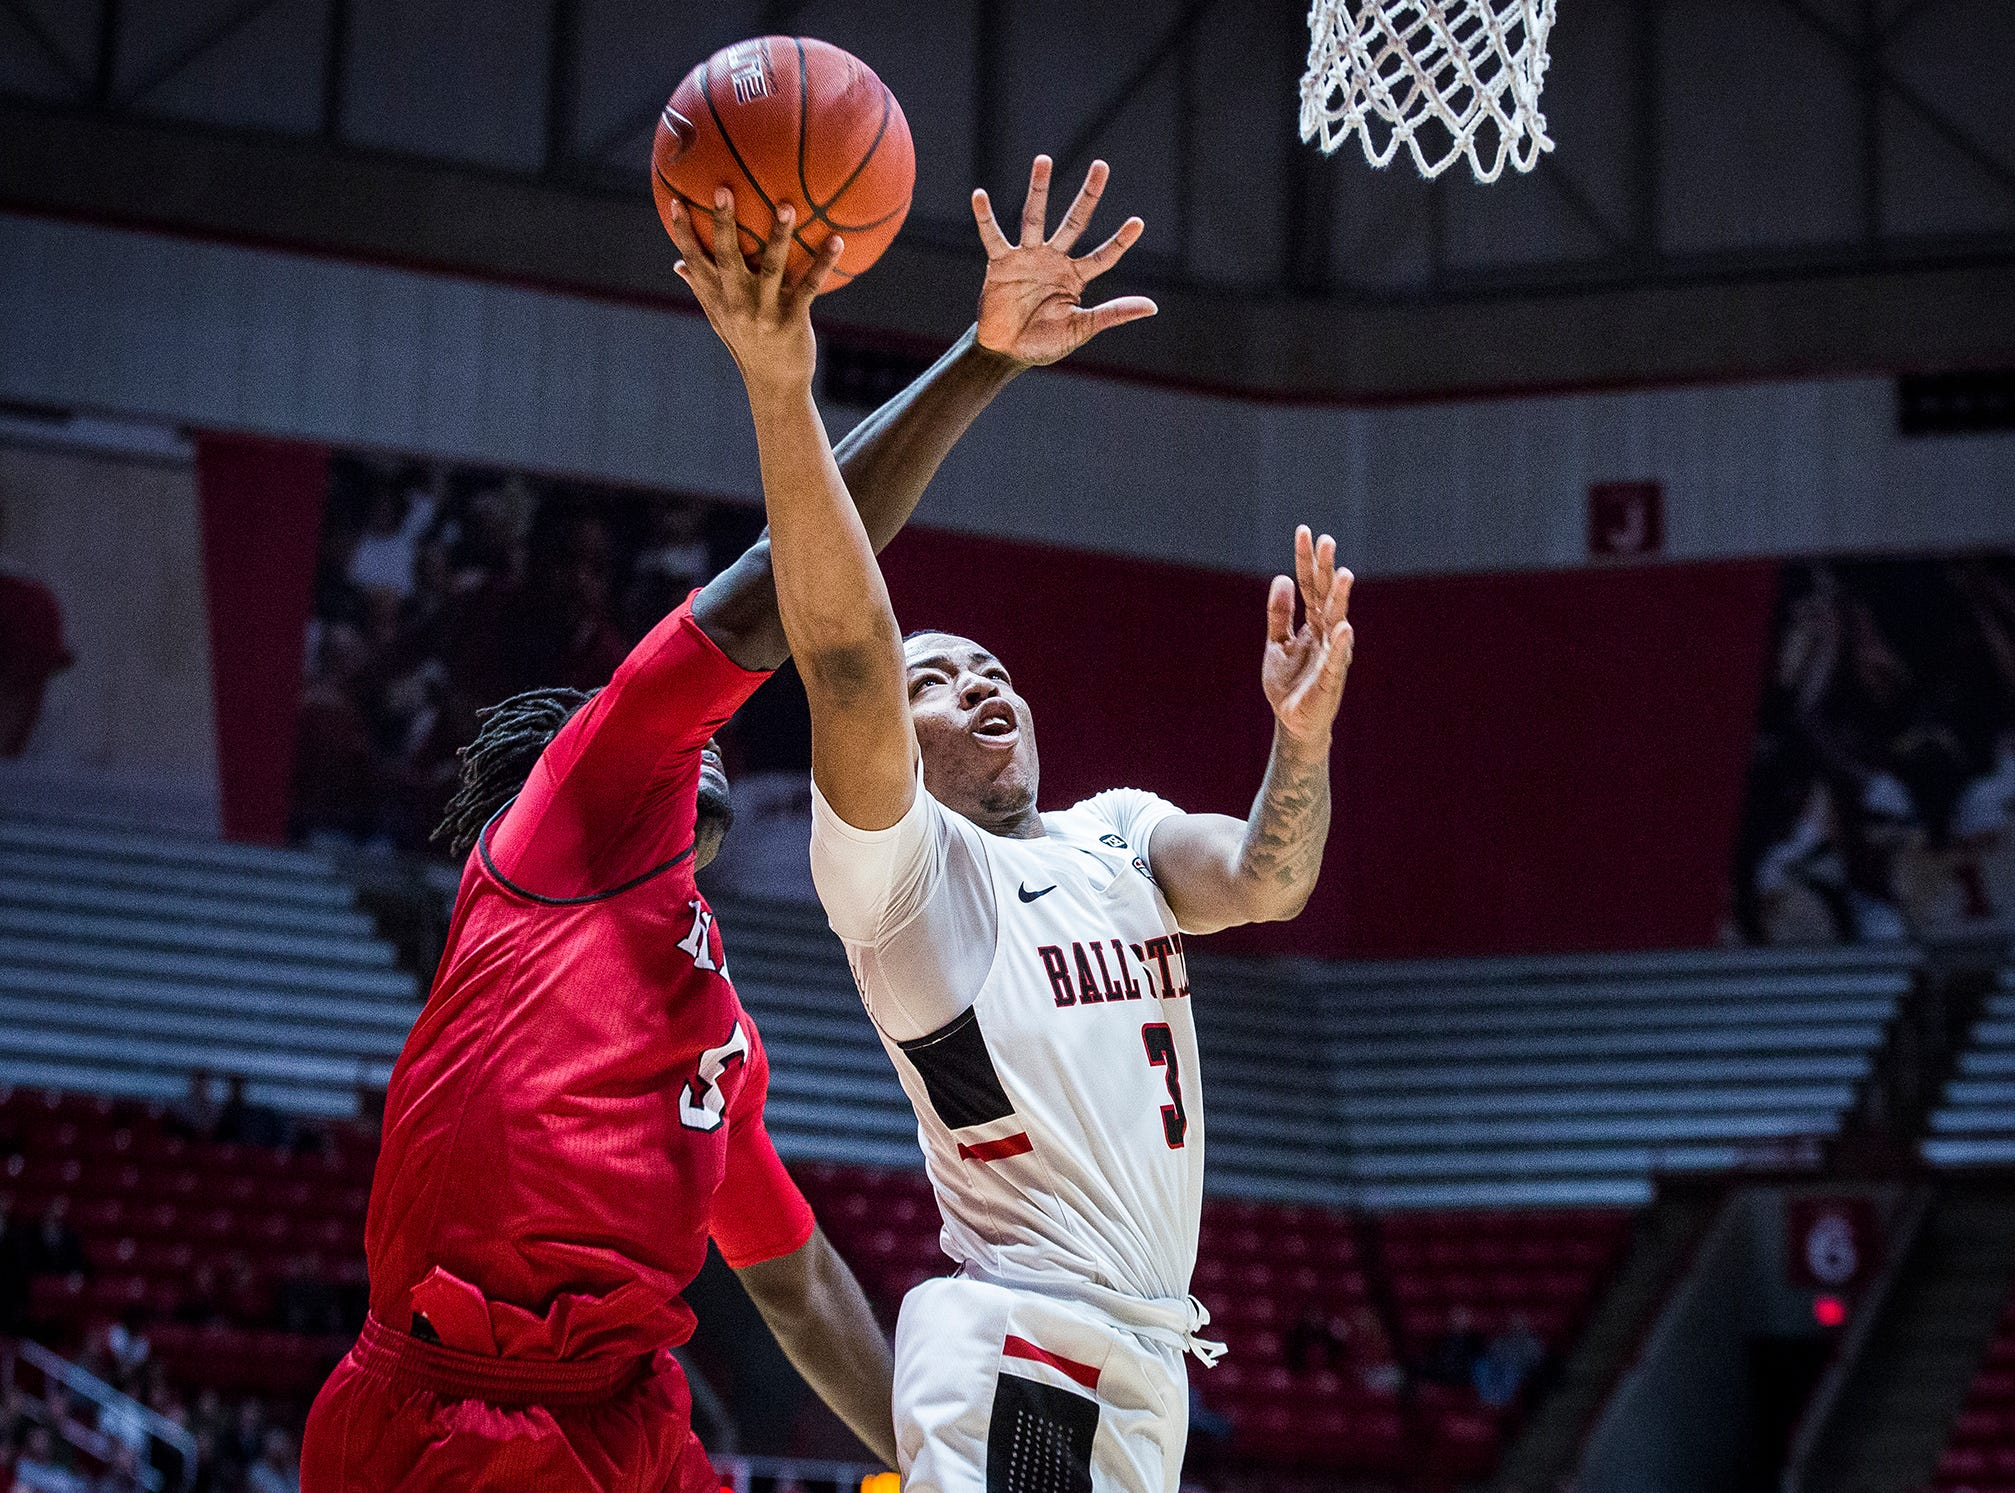 Ball State's Josh Thompson shoots past Miami's defense during their game at Worthen Arena Tuesday, Jan. 22, 2018.